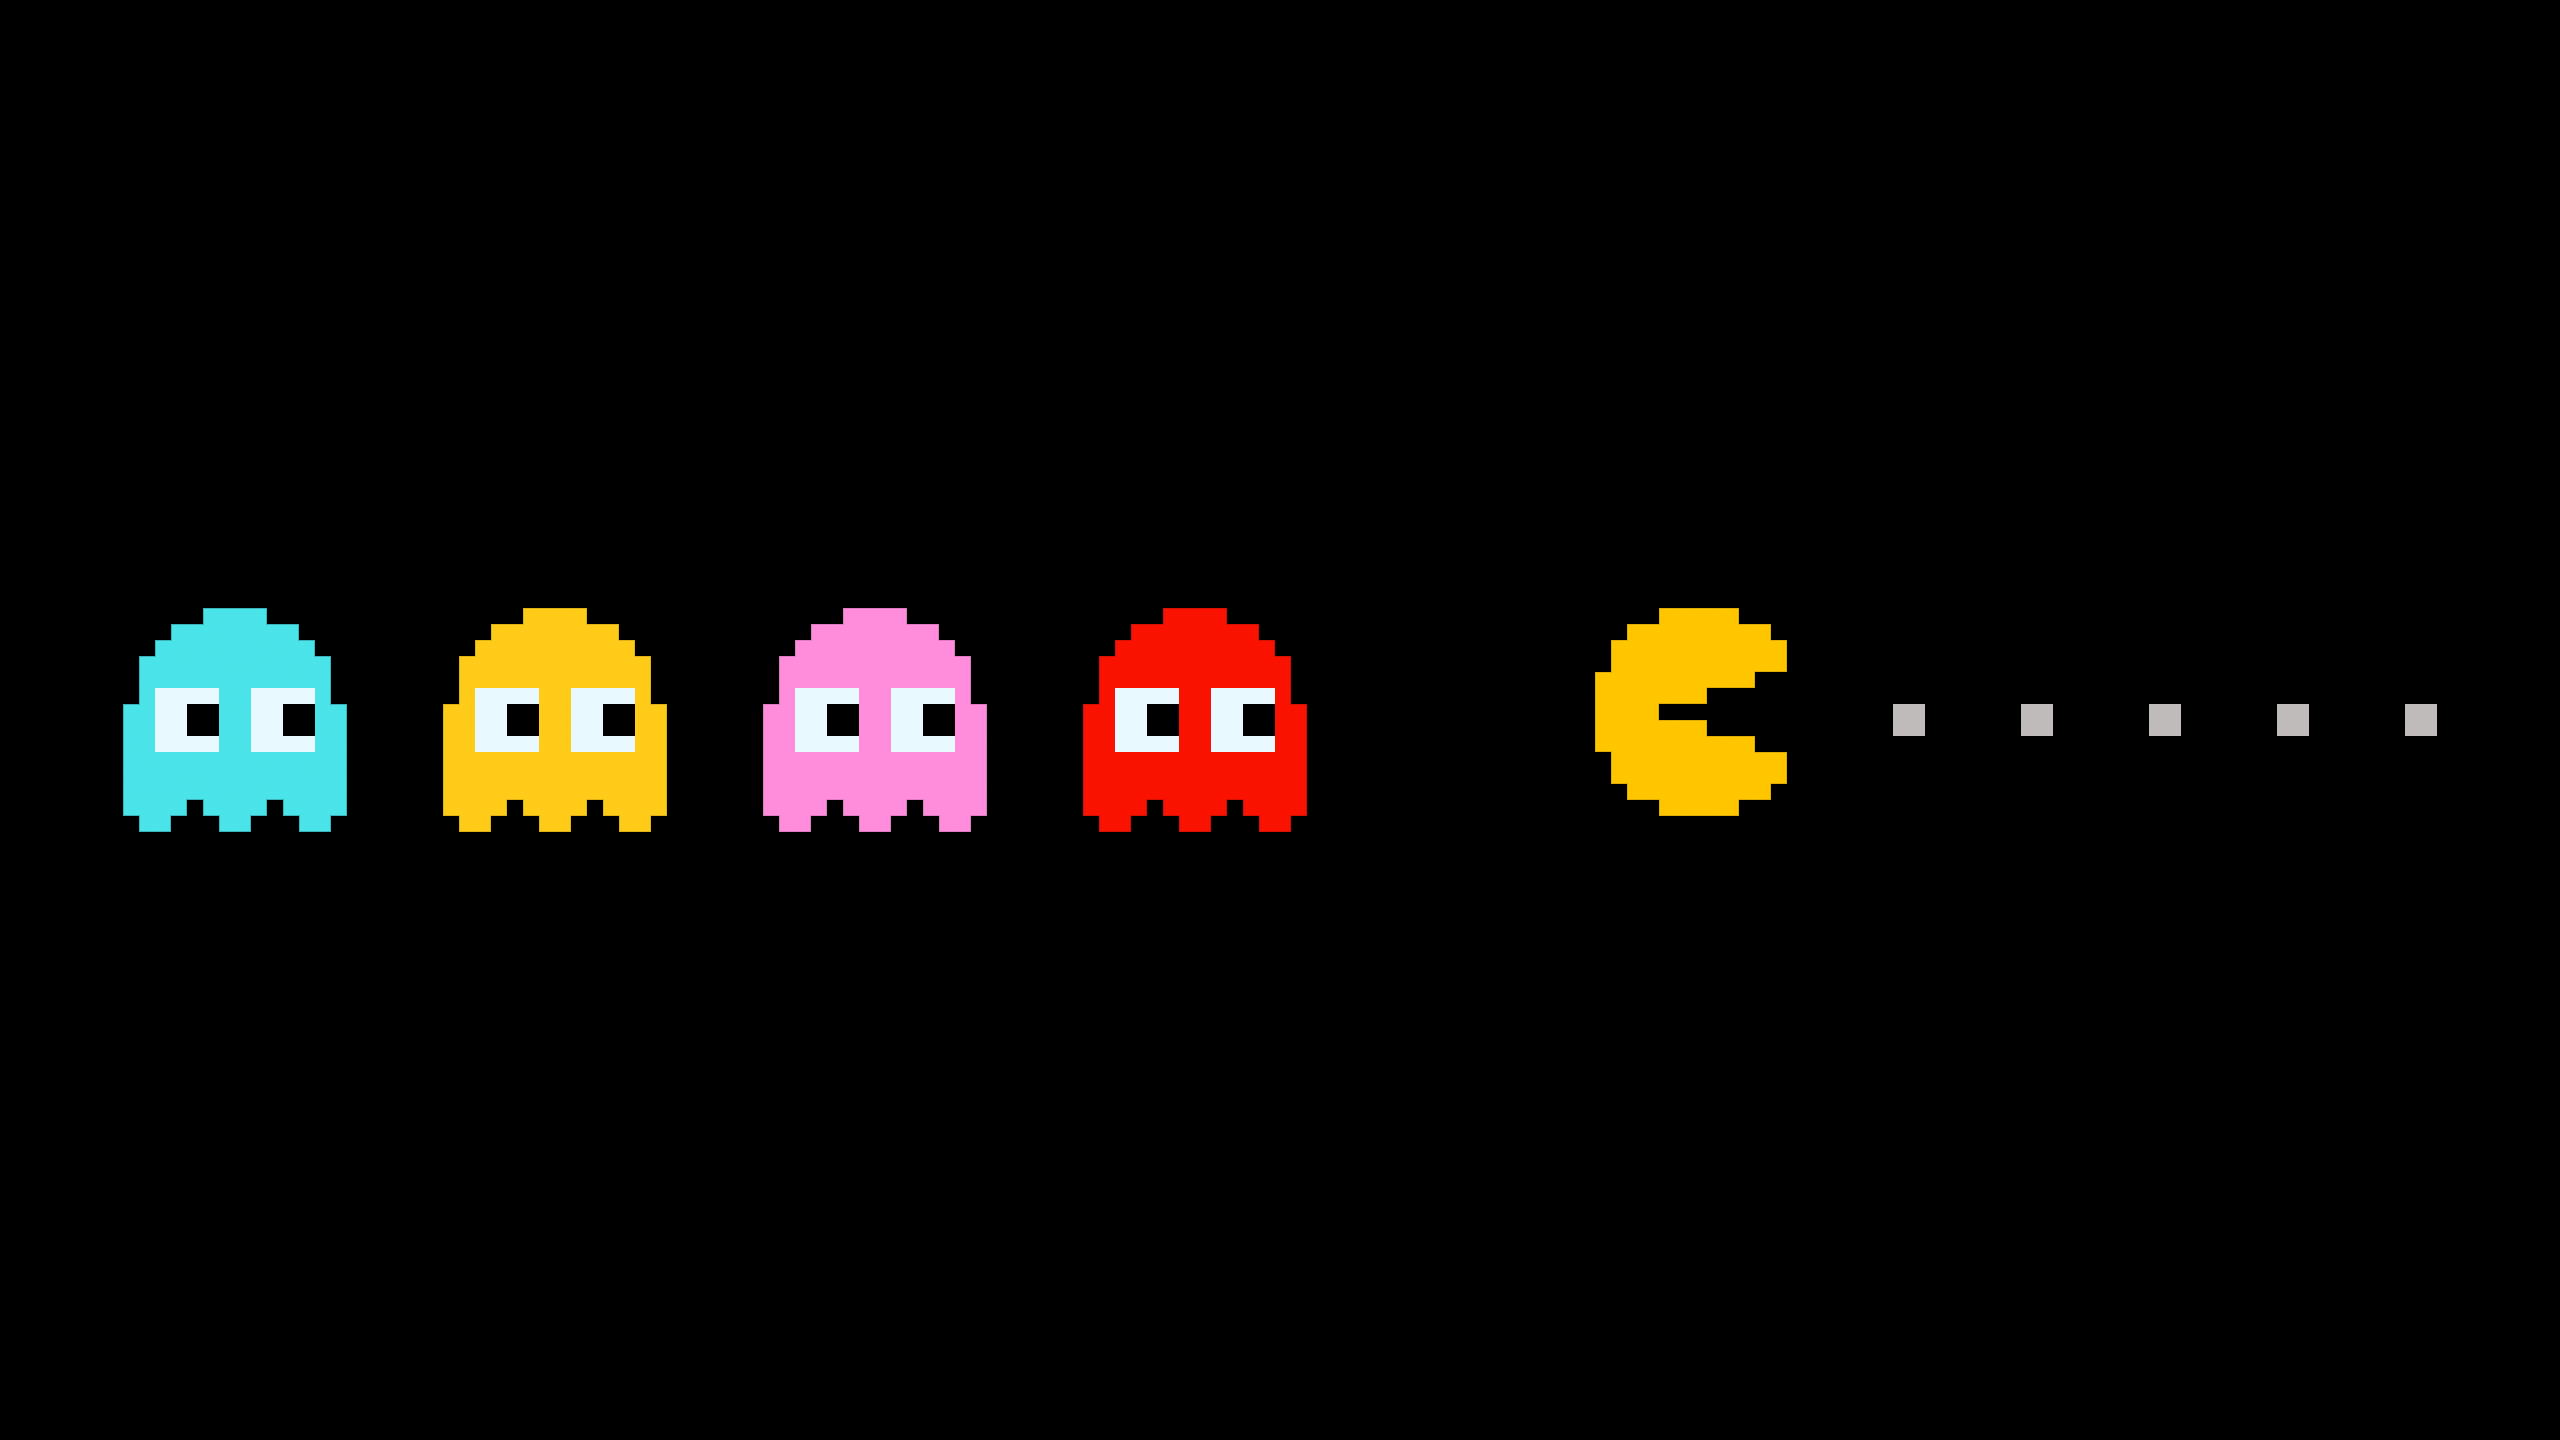 By Kerri Stong - Pacman Wallpapers, 2560x1440 px